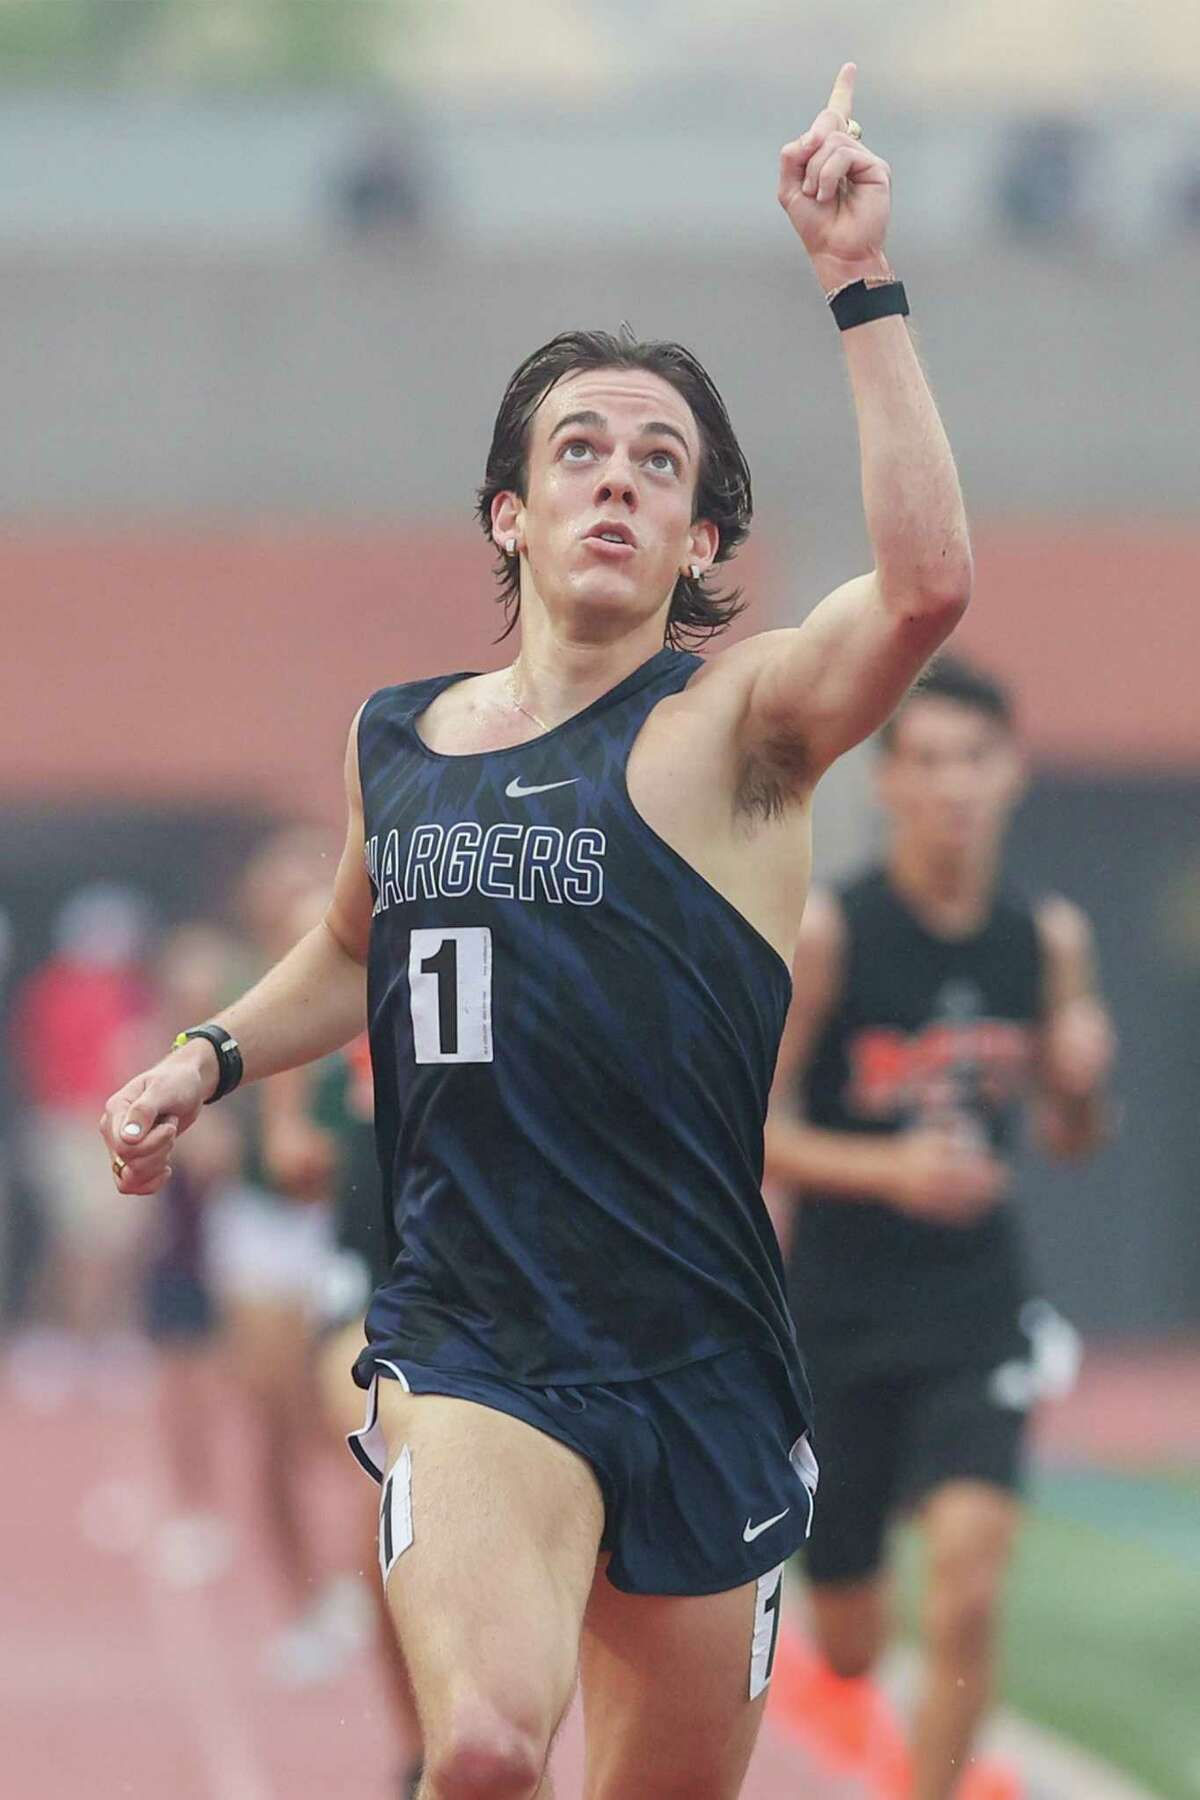 Boerne Champion's Foster Wilfong points to the sky as he crosses the finish line of the 5A boys 3200-meter run during the first day of the Region IV-6A/5A track and field championships at Heroes Stadium on Friday, April 23, 2021. Wilfong won the event with a meet record 9:09.68.